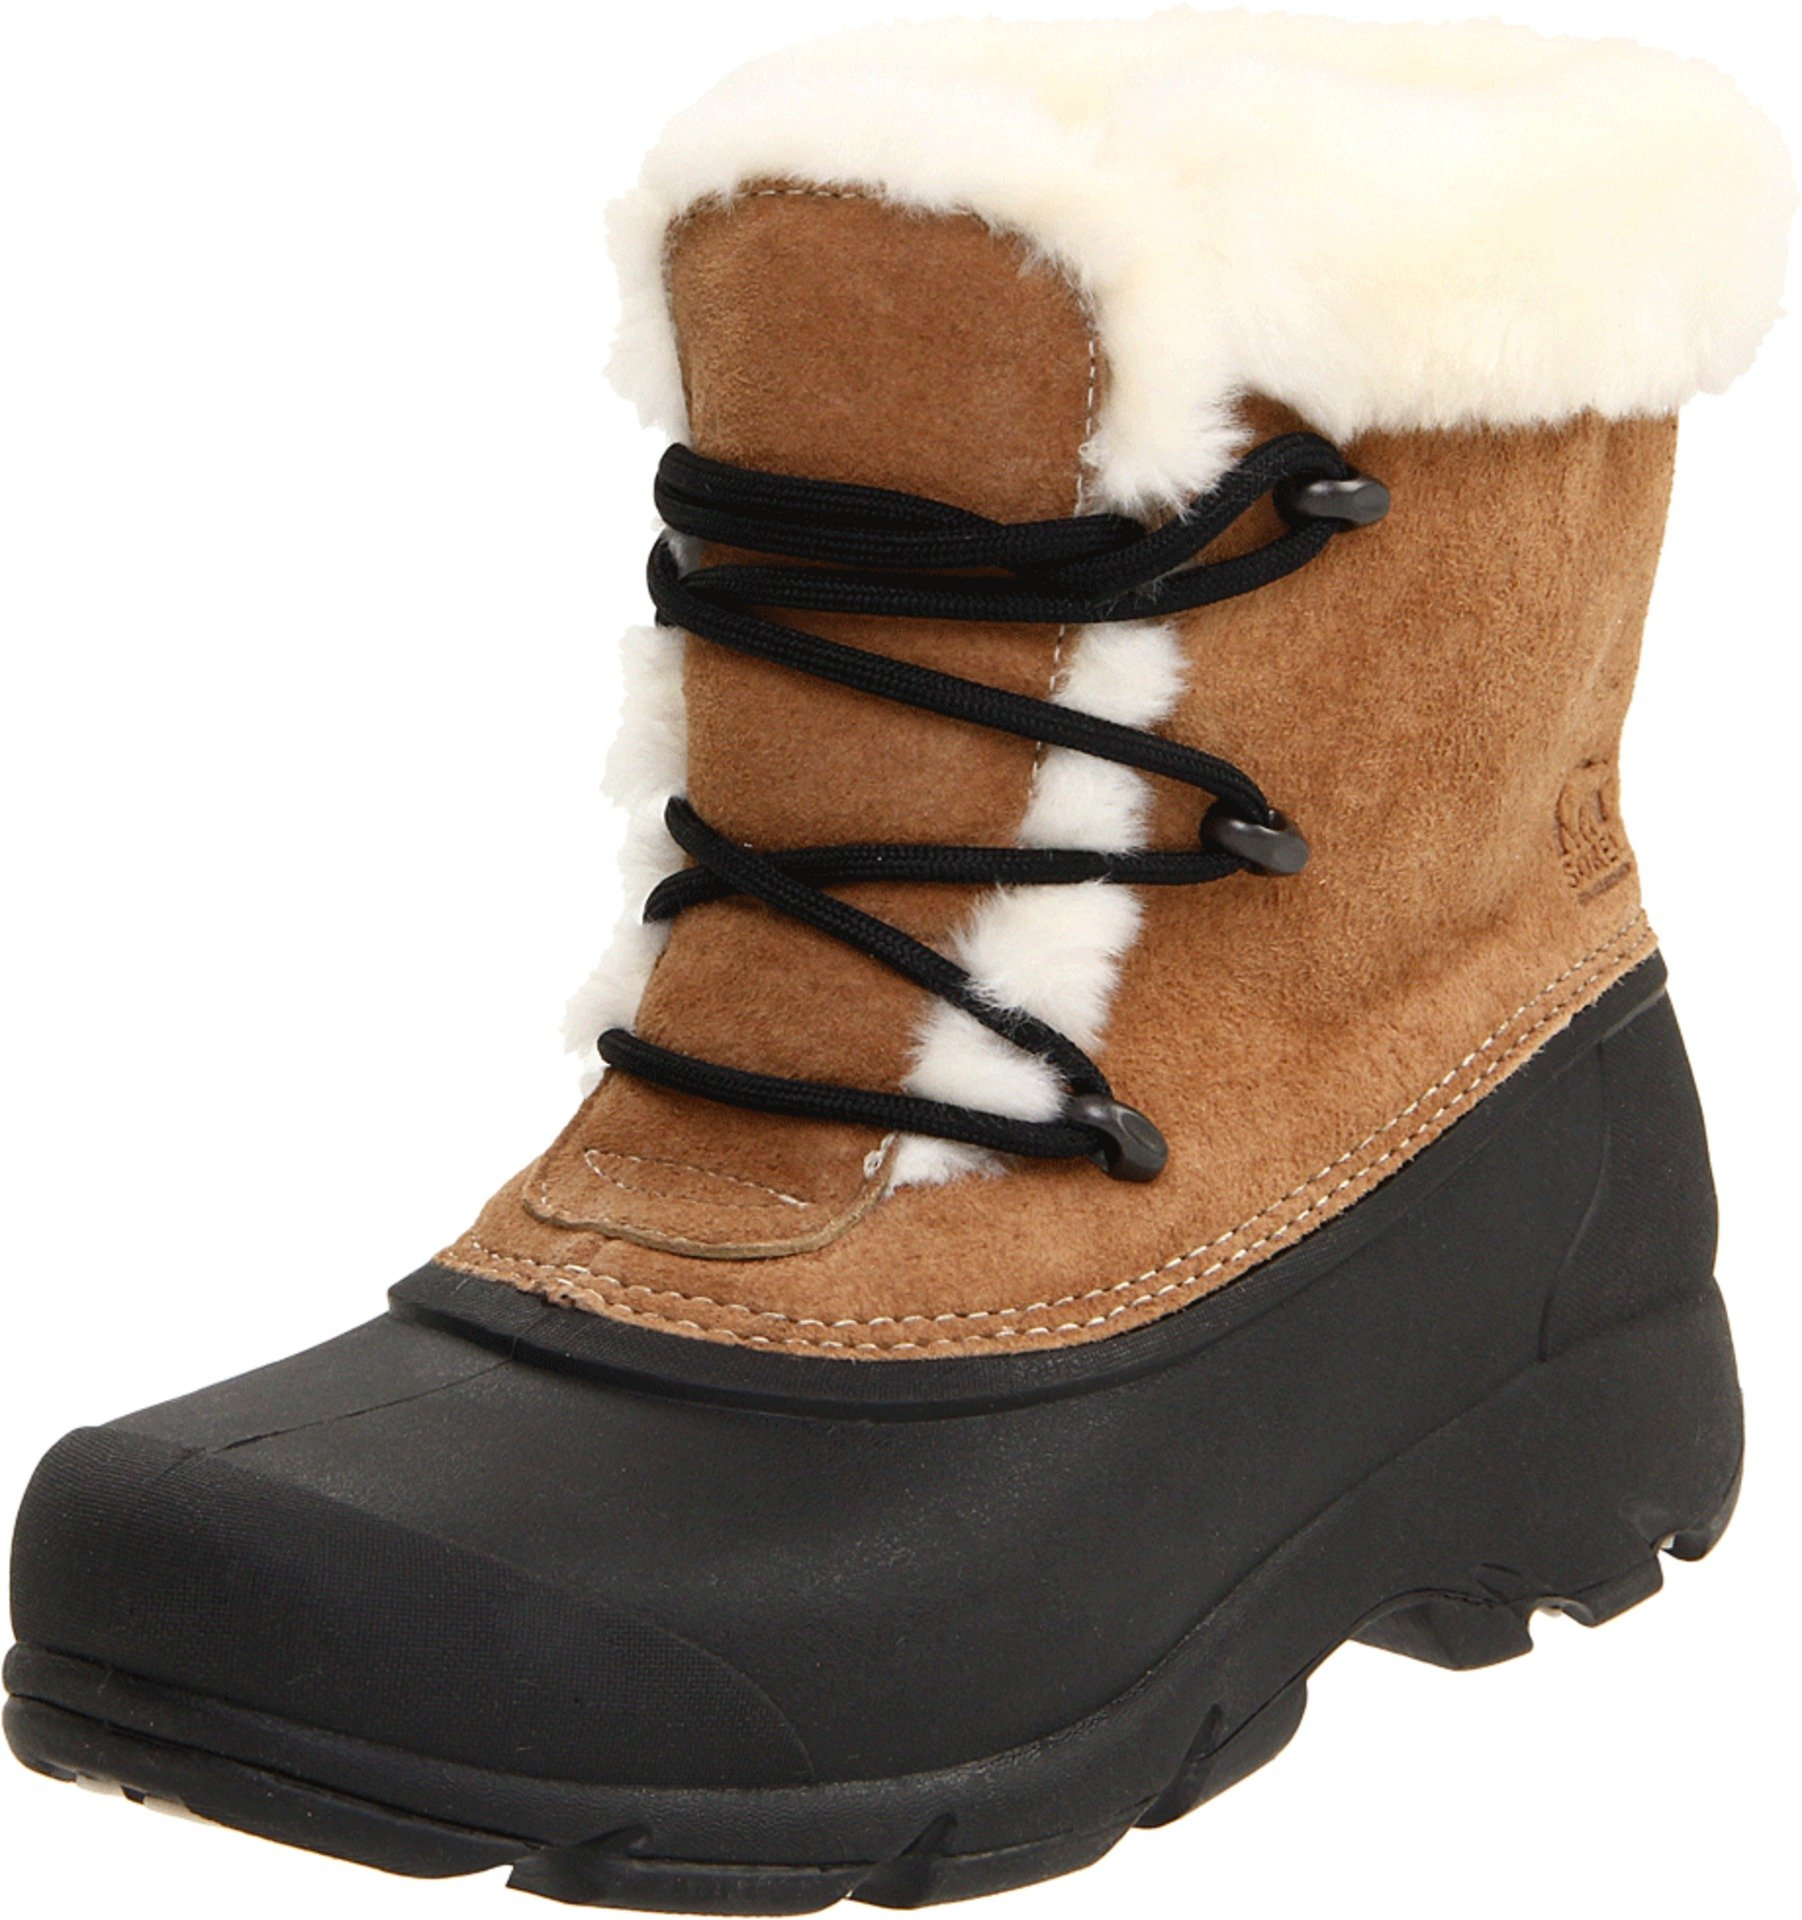 Sorel Women's Snow Angel Lace Boot,Rootbeer,10 M